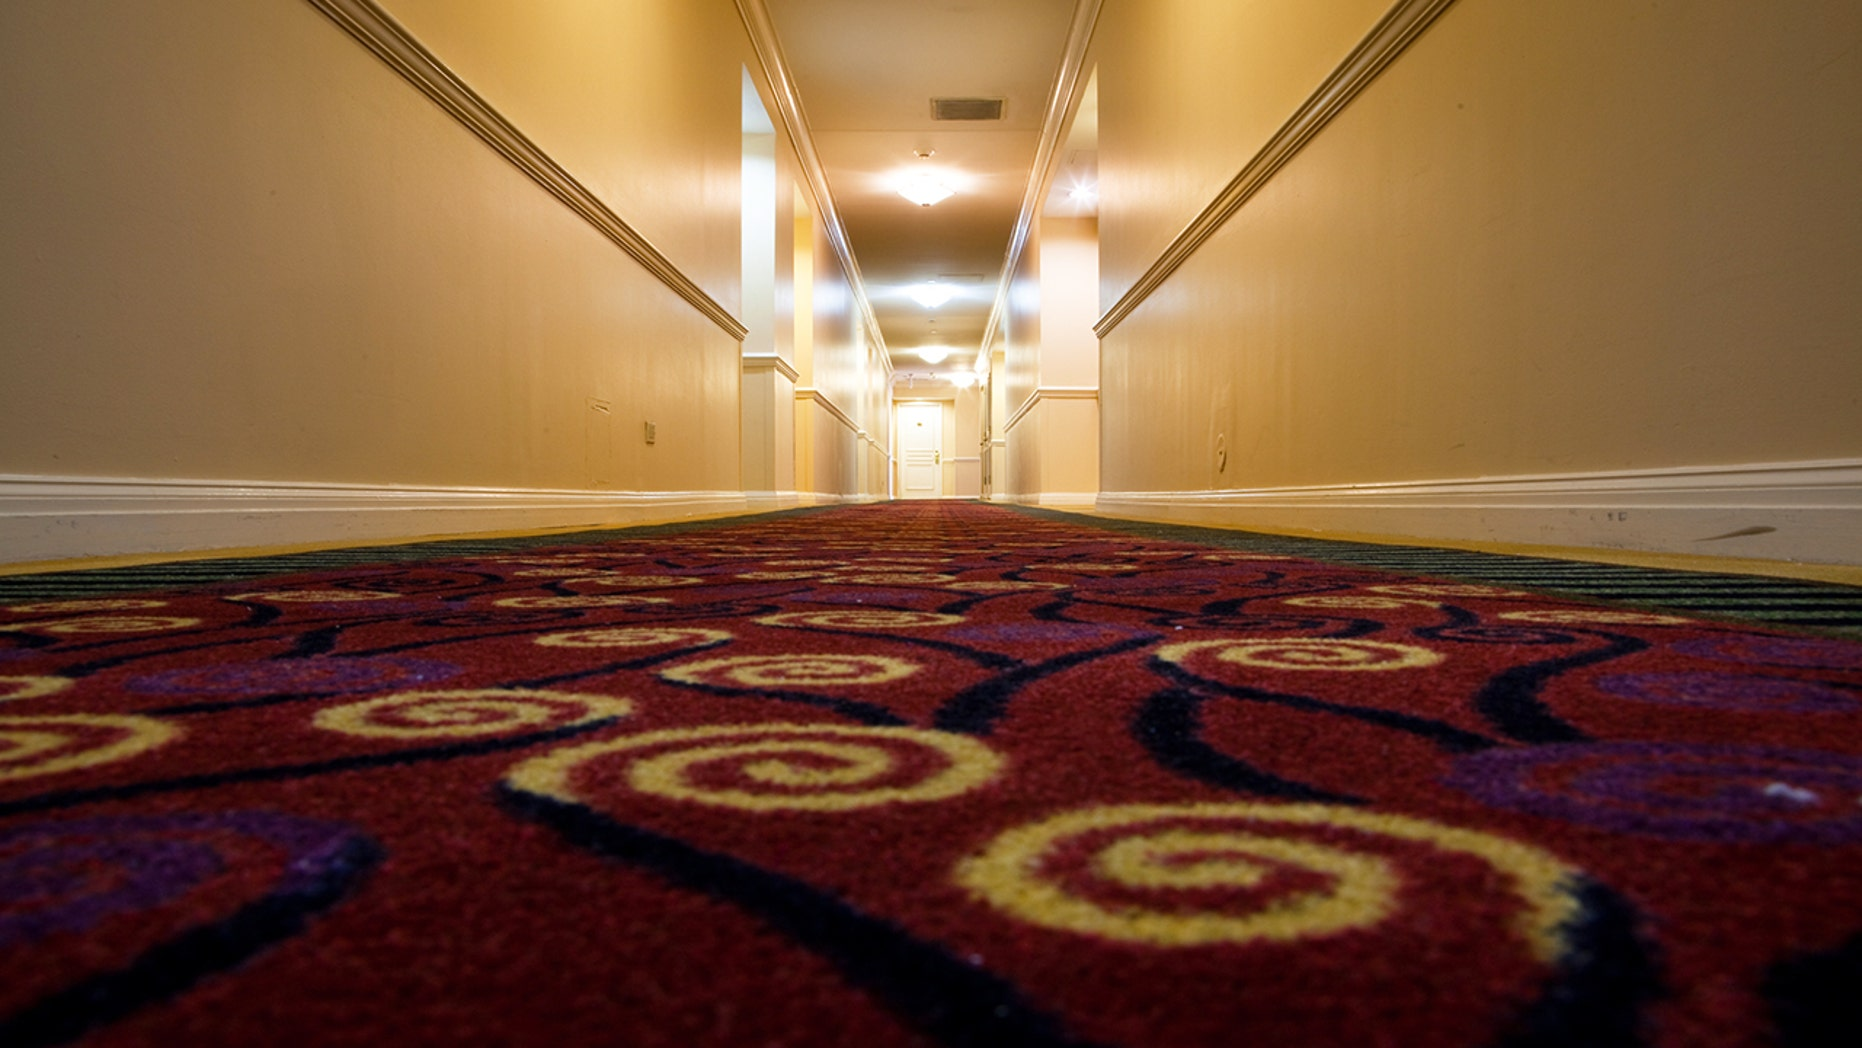 Bill Young has been documenting hotel carpets for years, but his Instagram account only took off this week.